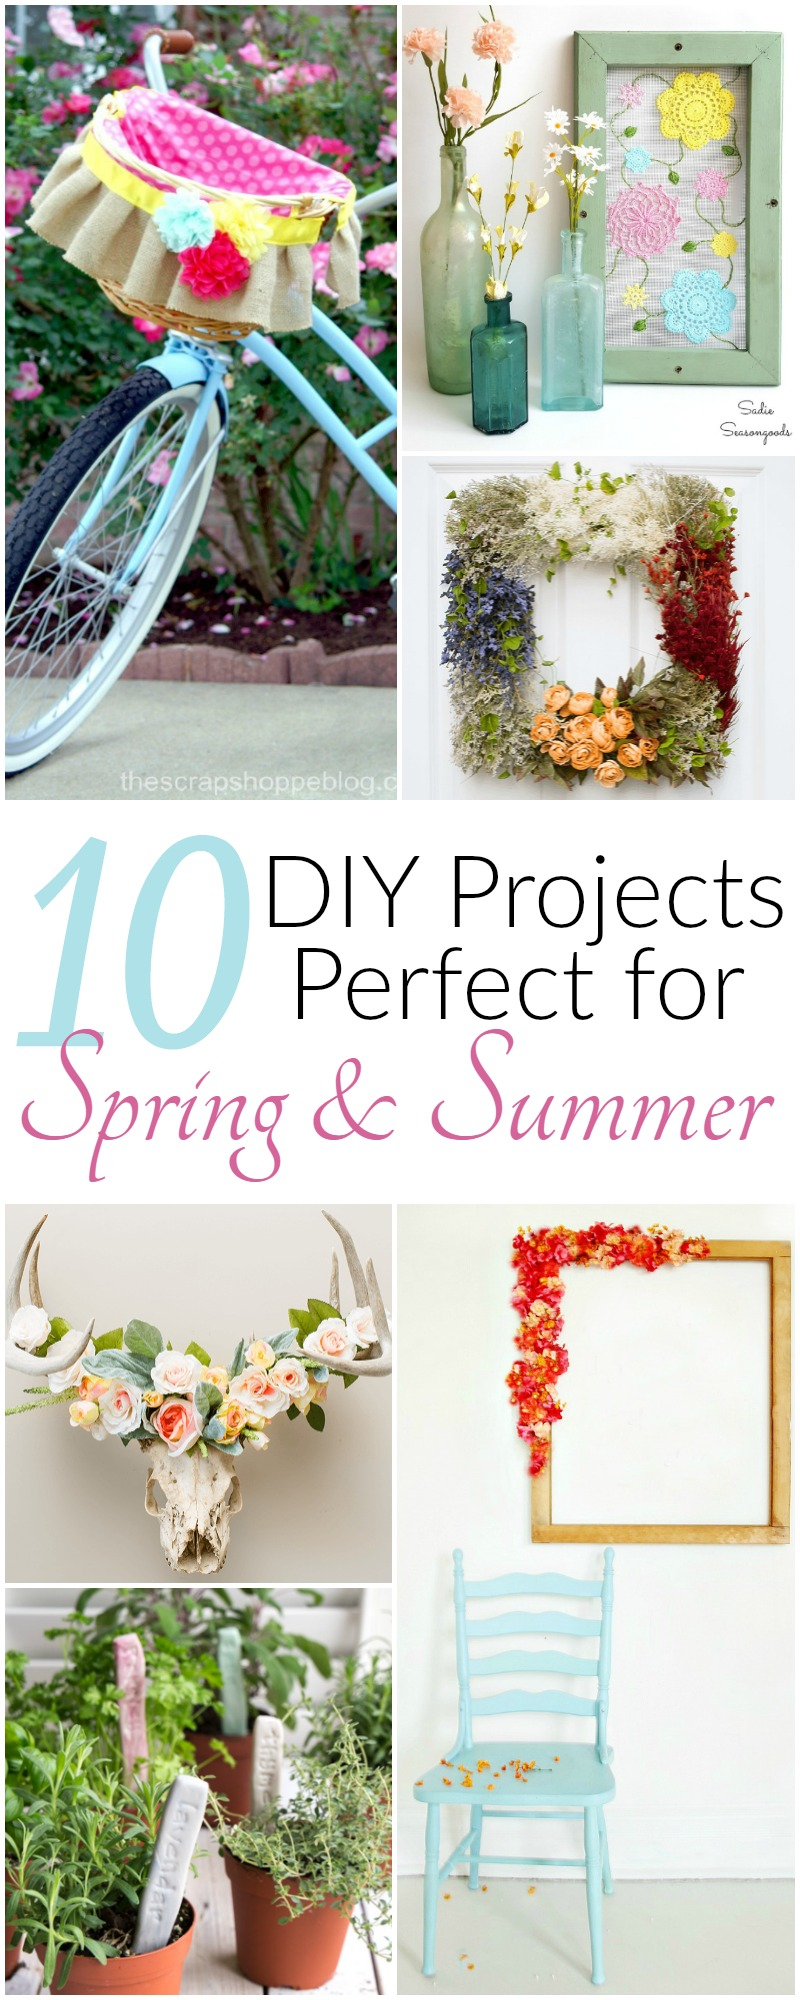 10 DIY Projects Perfect for Spring | awonderfulthought.com